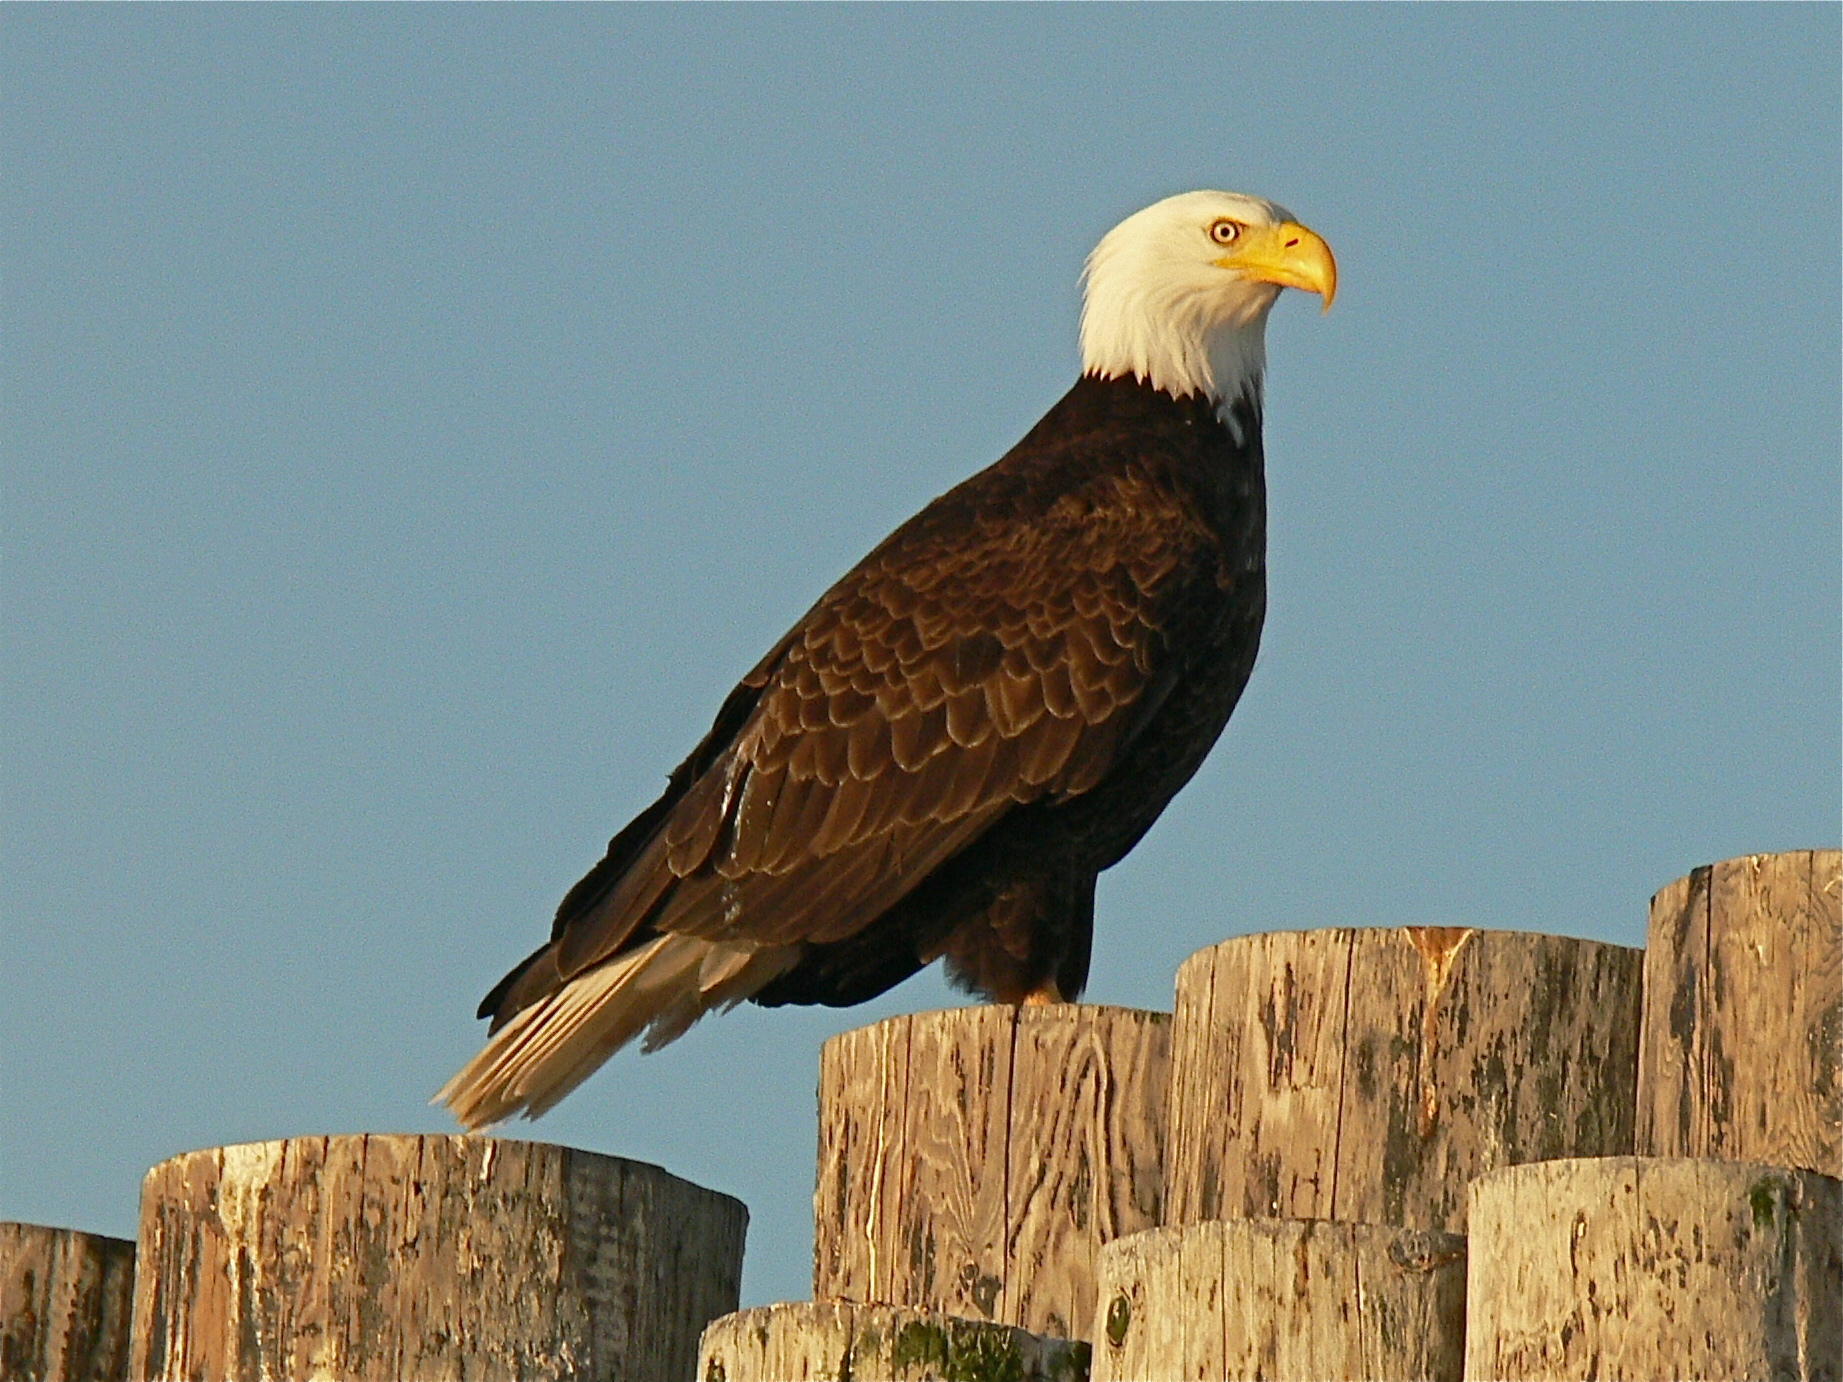 bigstock-Eagle-On-Pilings-4963975.jpg